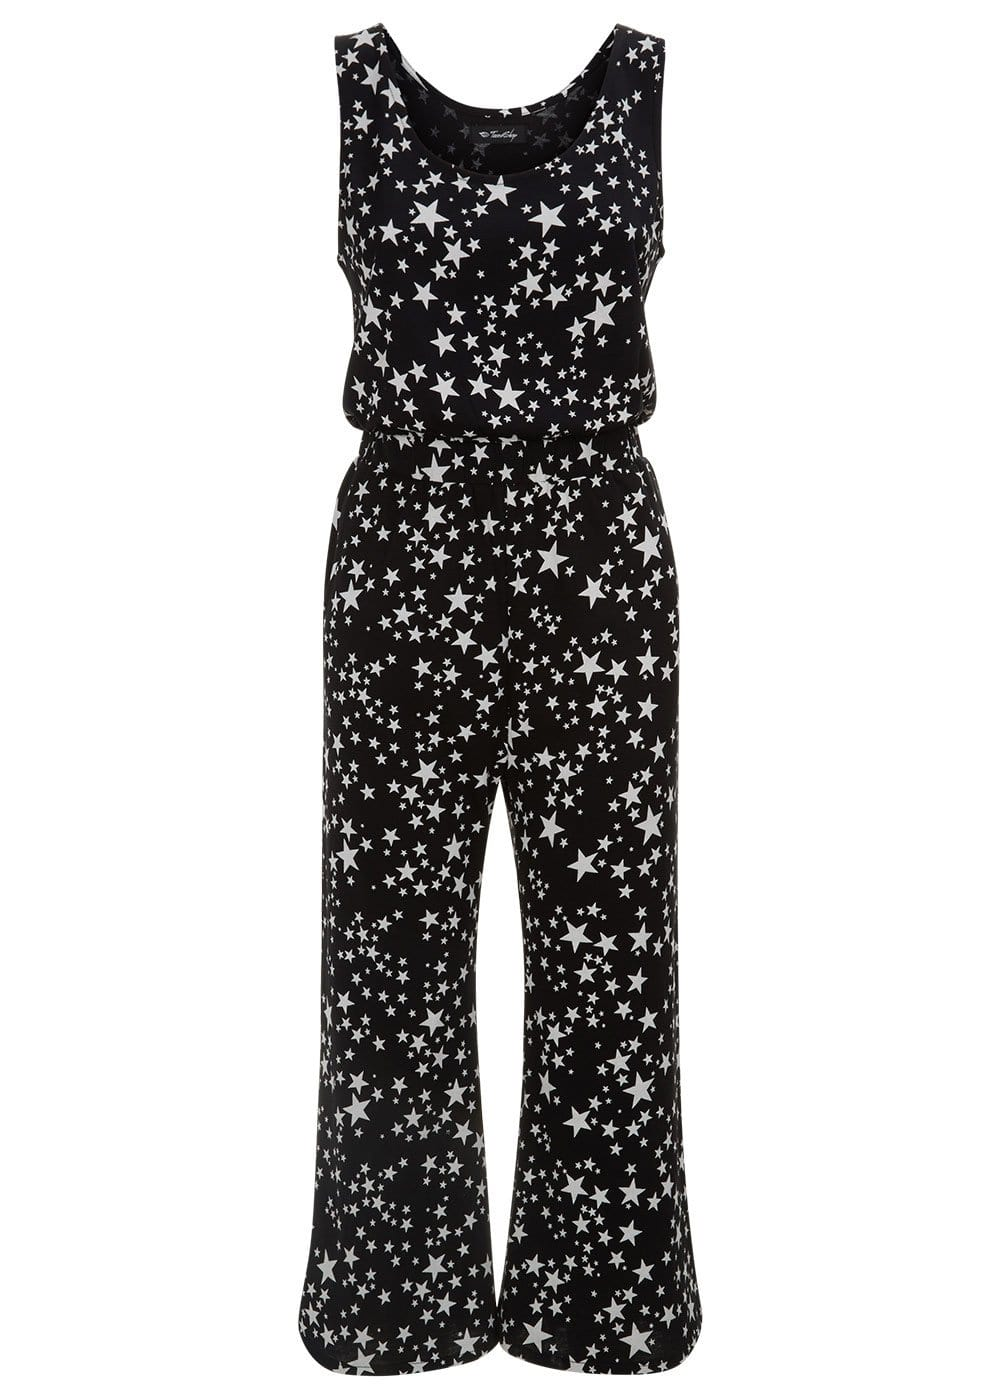 TeenzShop Youth Girls Starry Night Jumpsuit